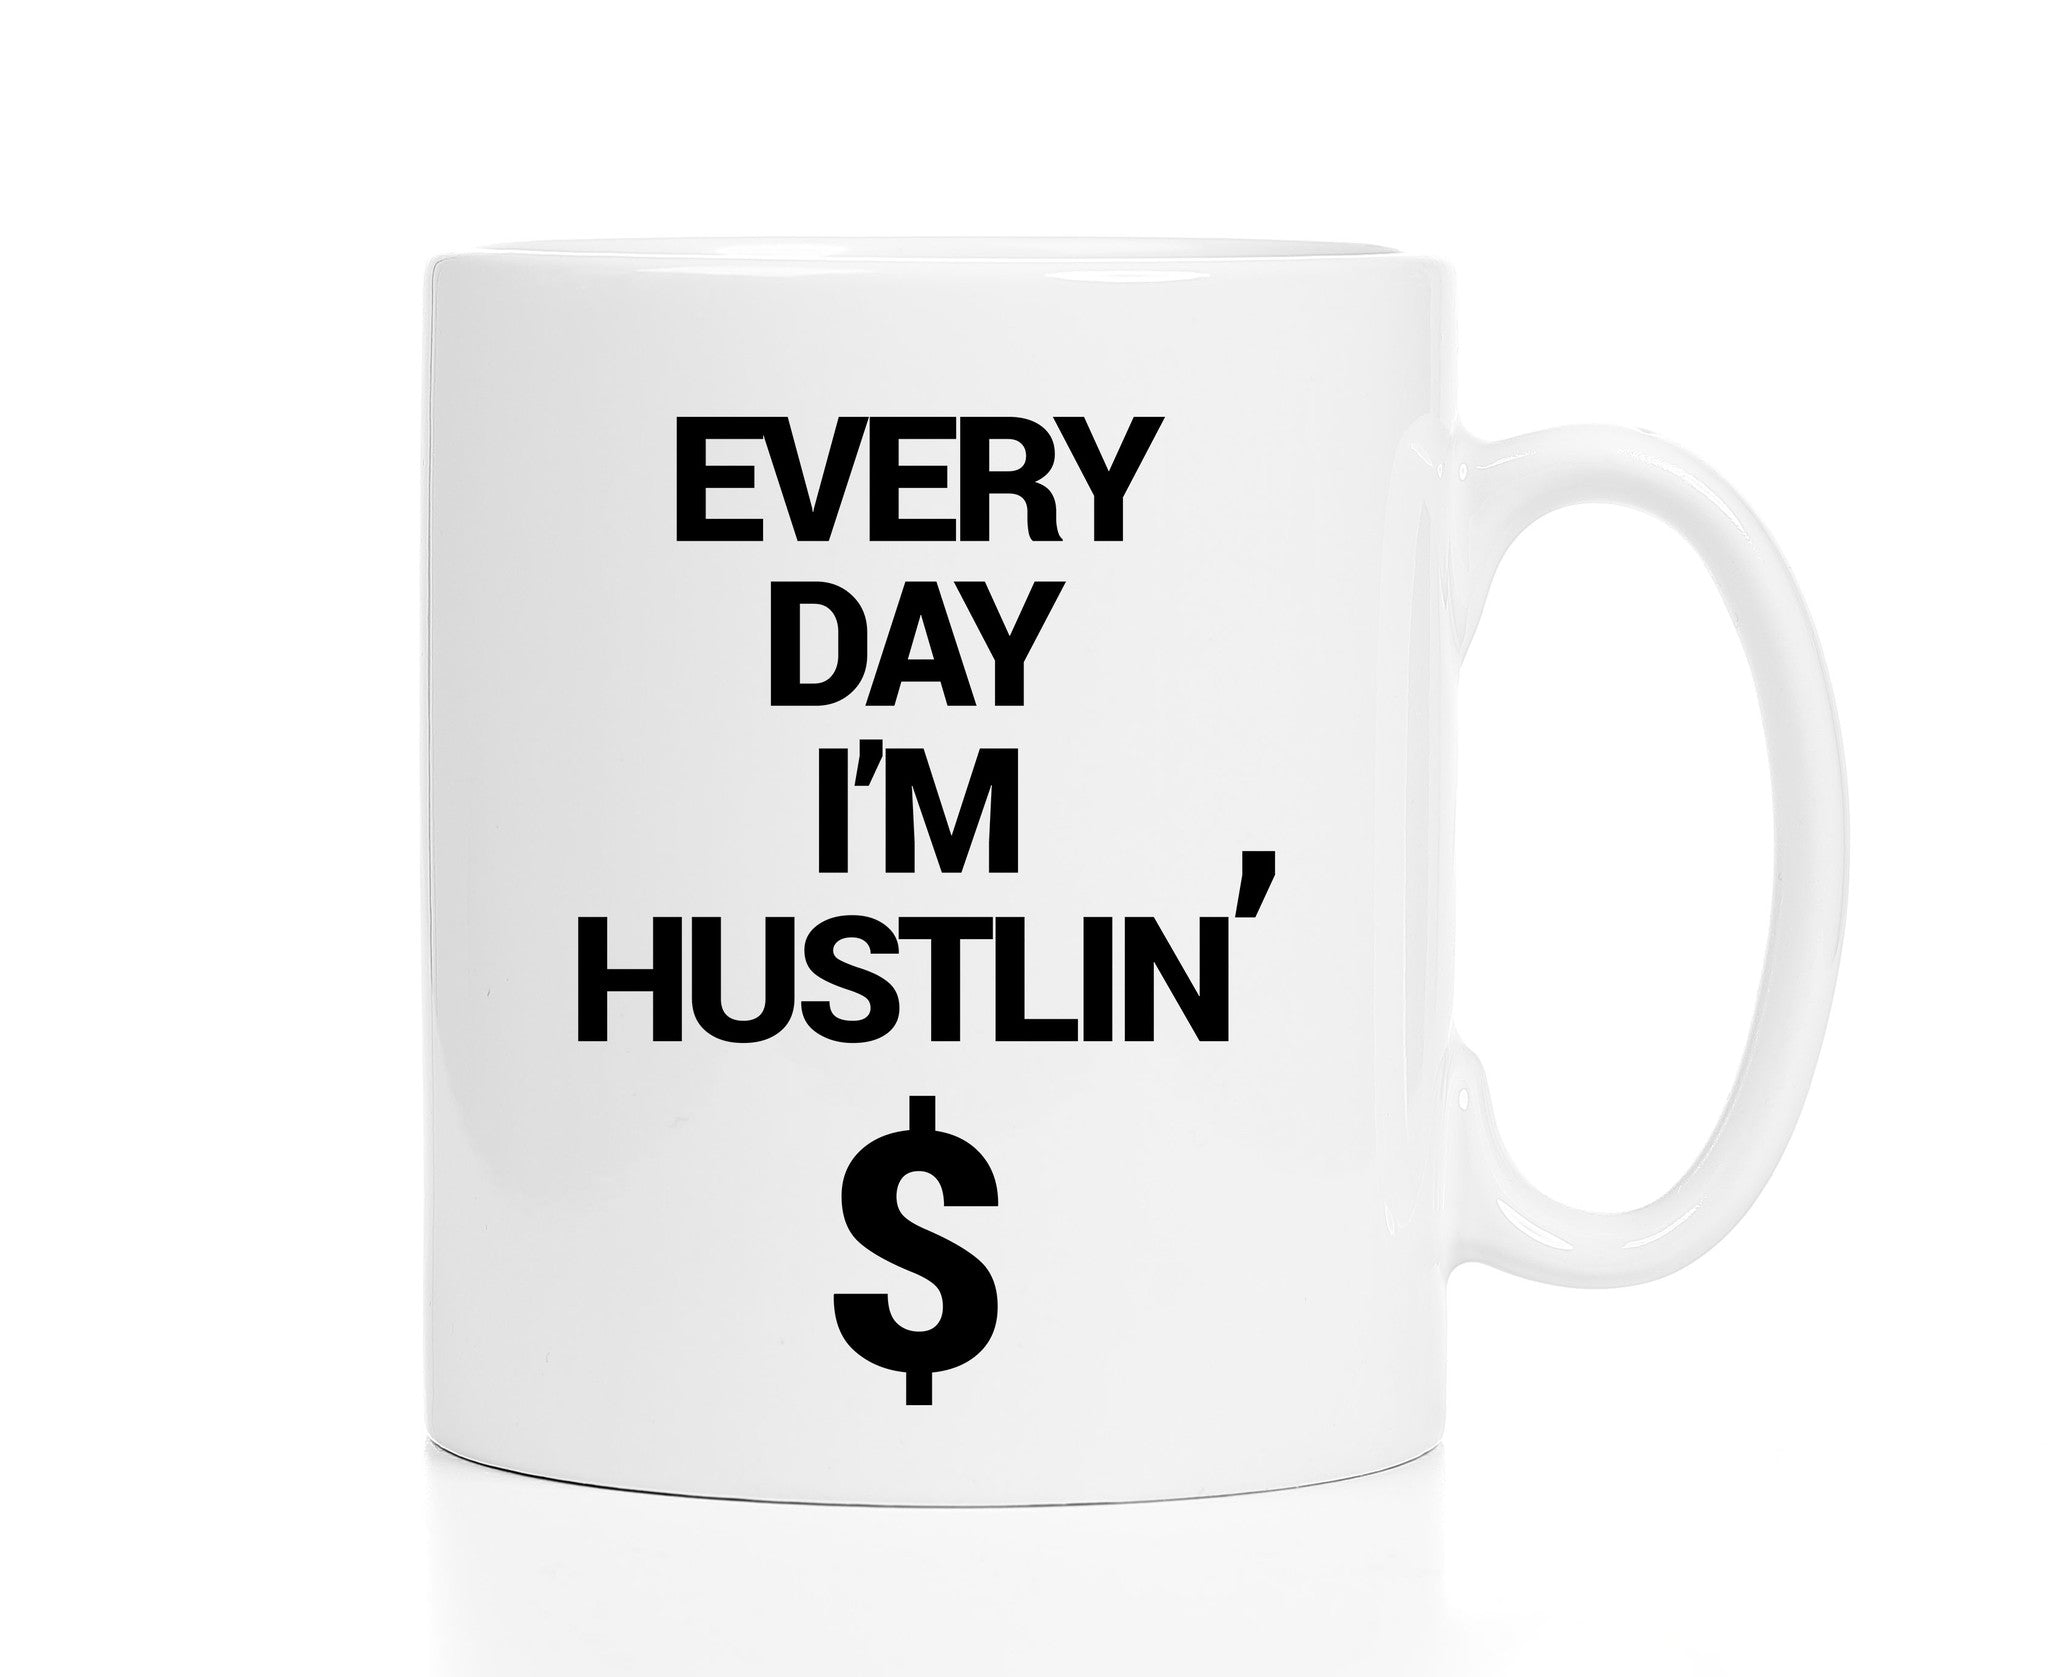 Every Day I'm Hustlin' Mug